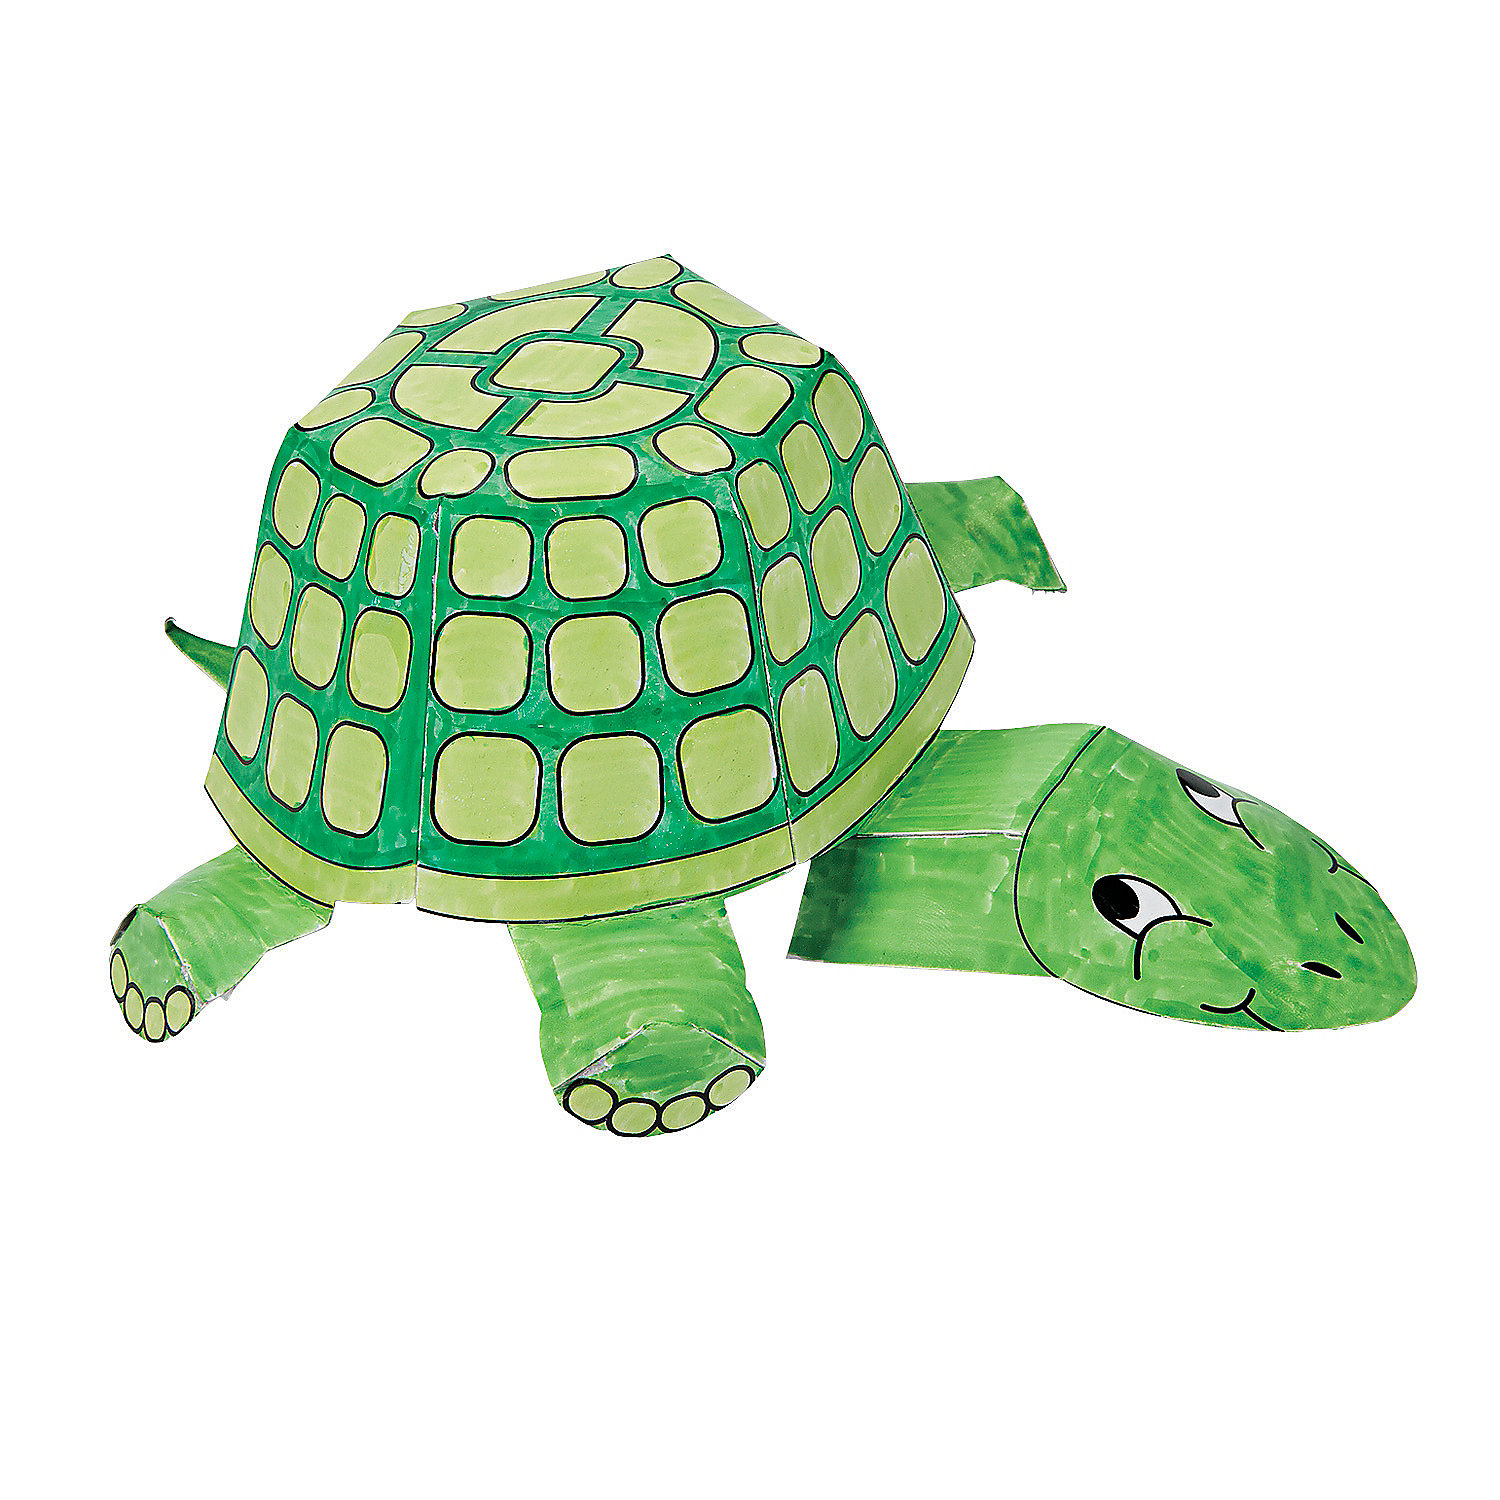 Color Your Own 3D Turtles, Coloring Crafts, Crafts for ... - photo#11